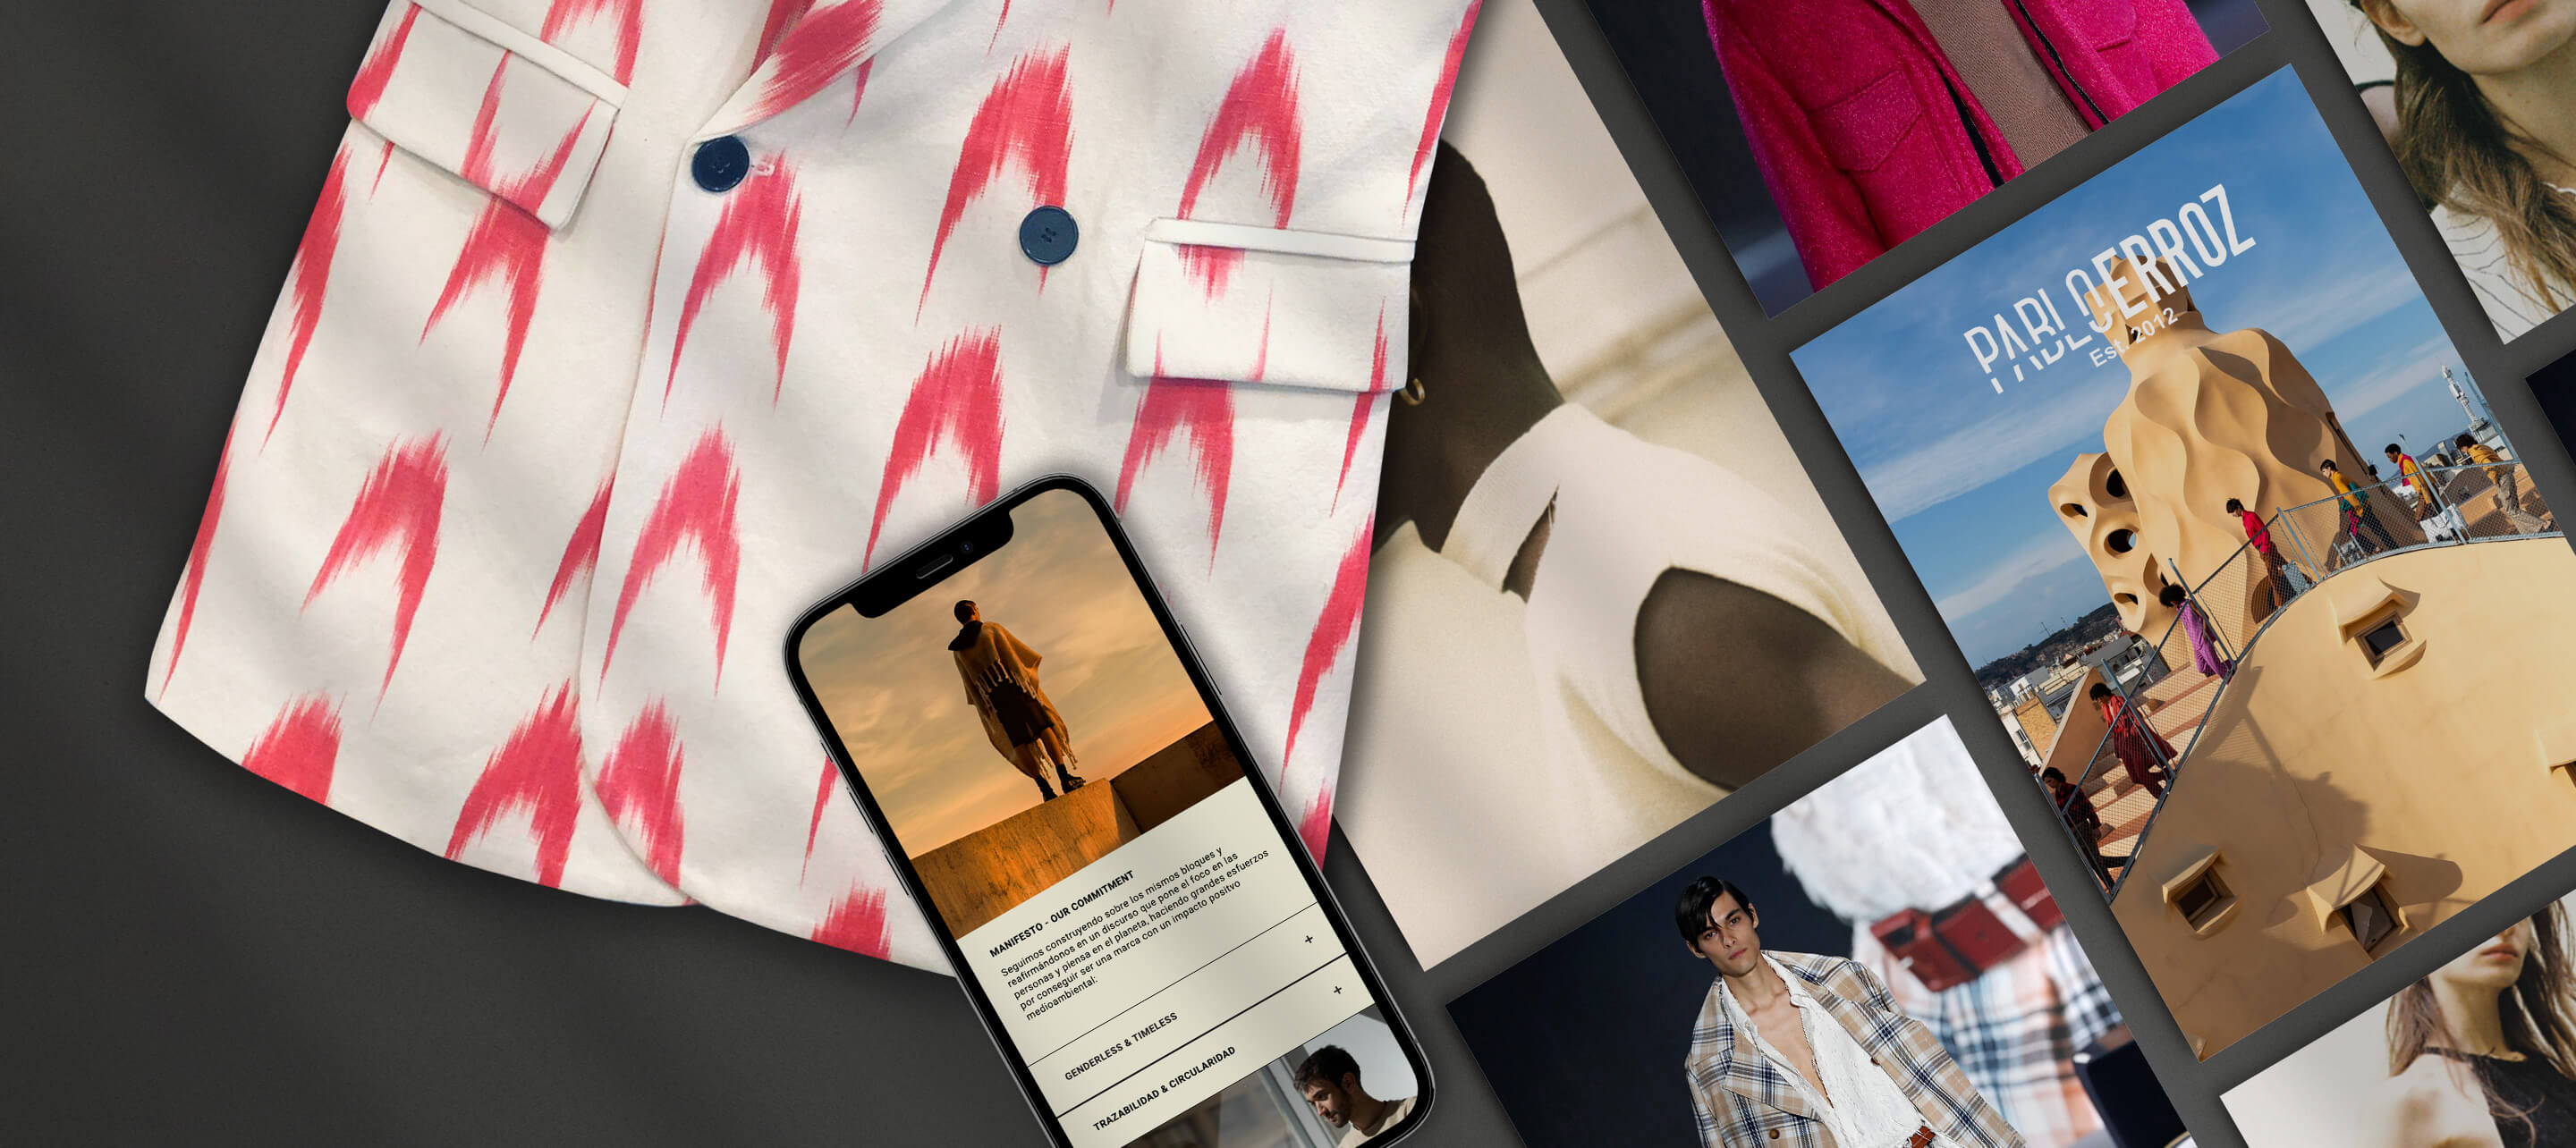 How Pablo Erroz created a new kind of fashion that gets consumers involved in circularity.